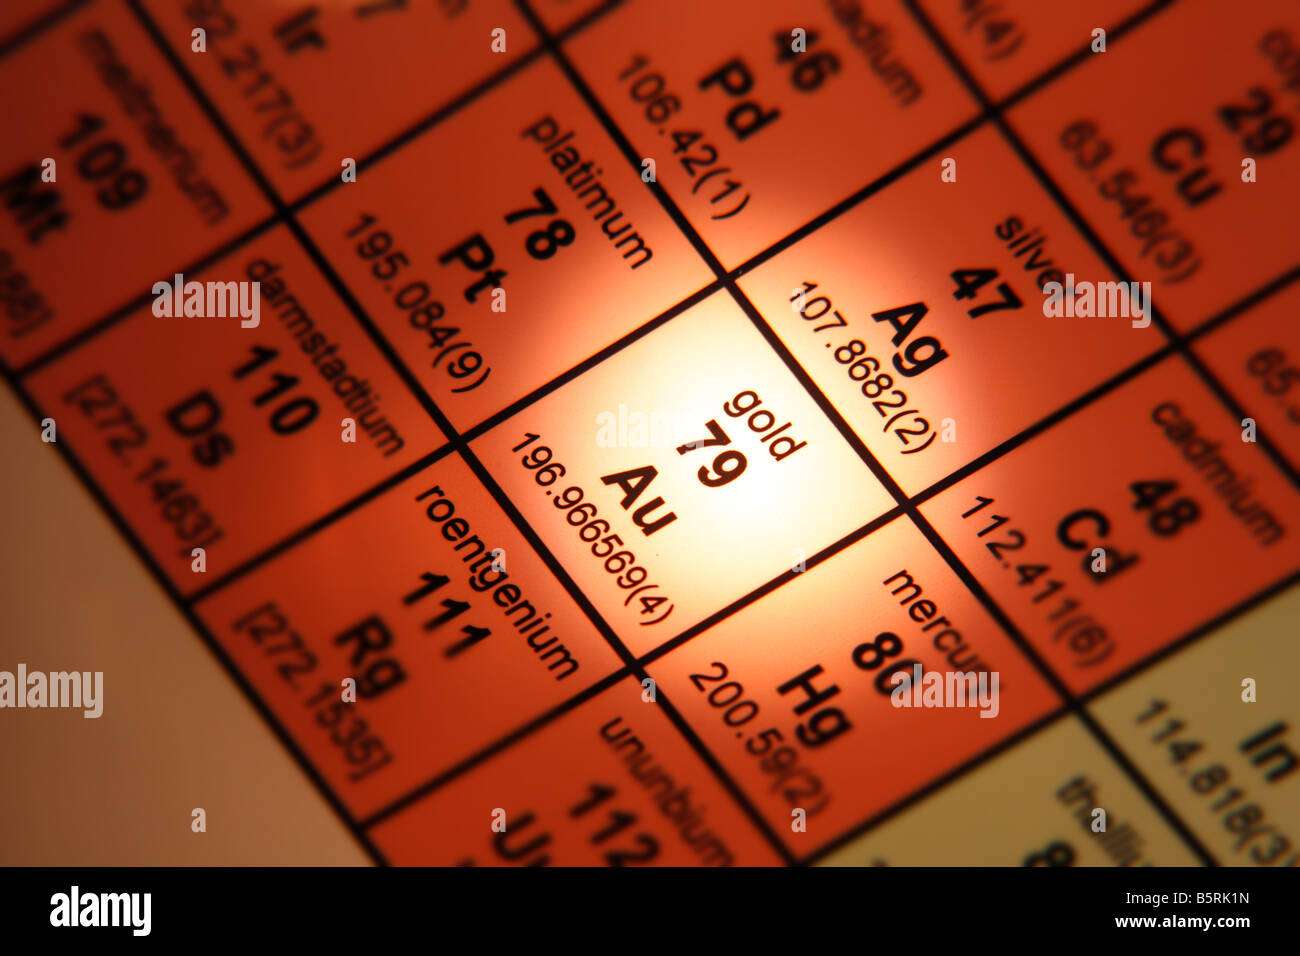 Periodic table of elements gold au stock photo royalty free image periodic table of elements gold au urtaz Image collections